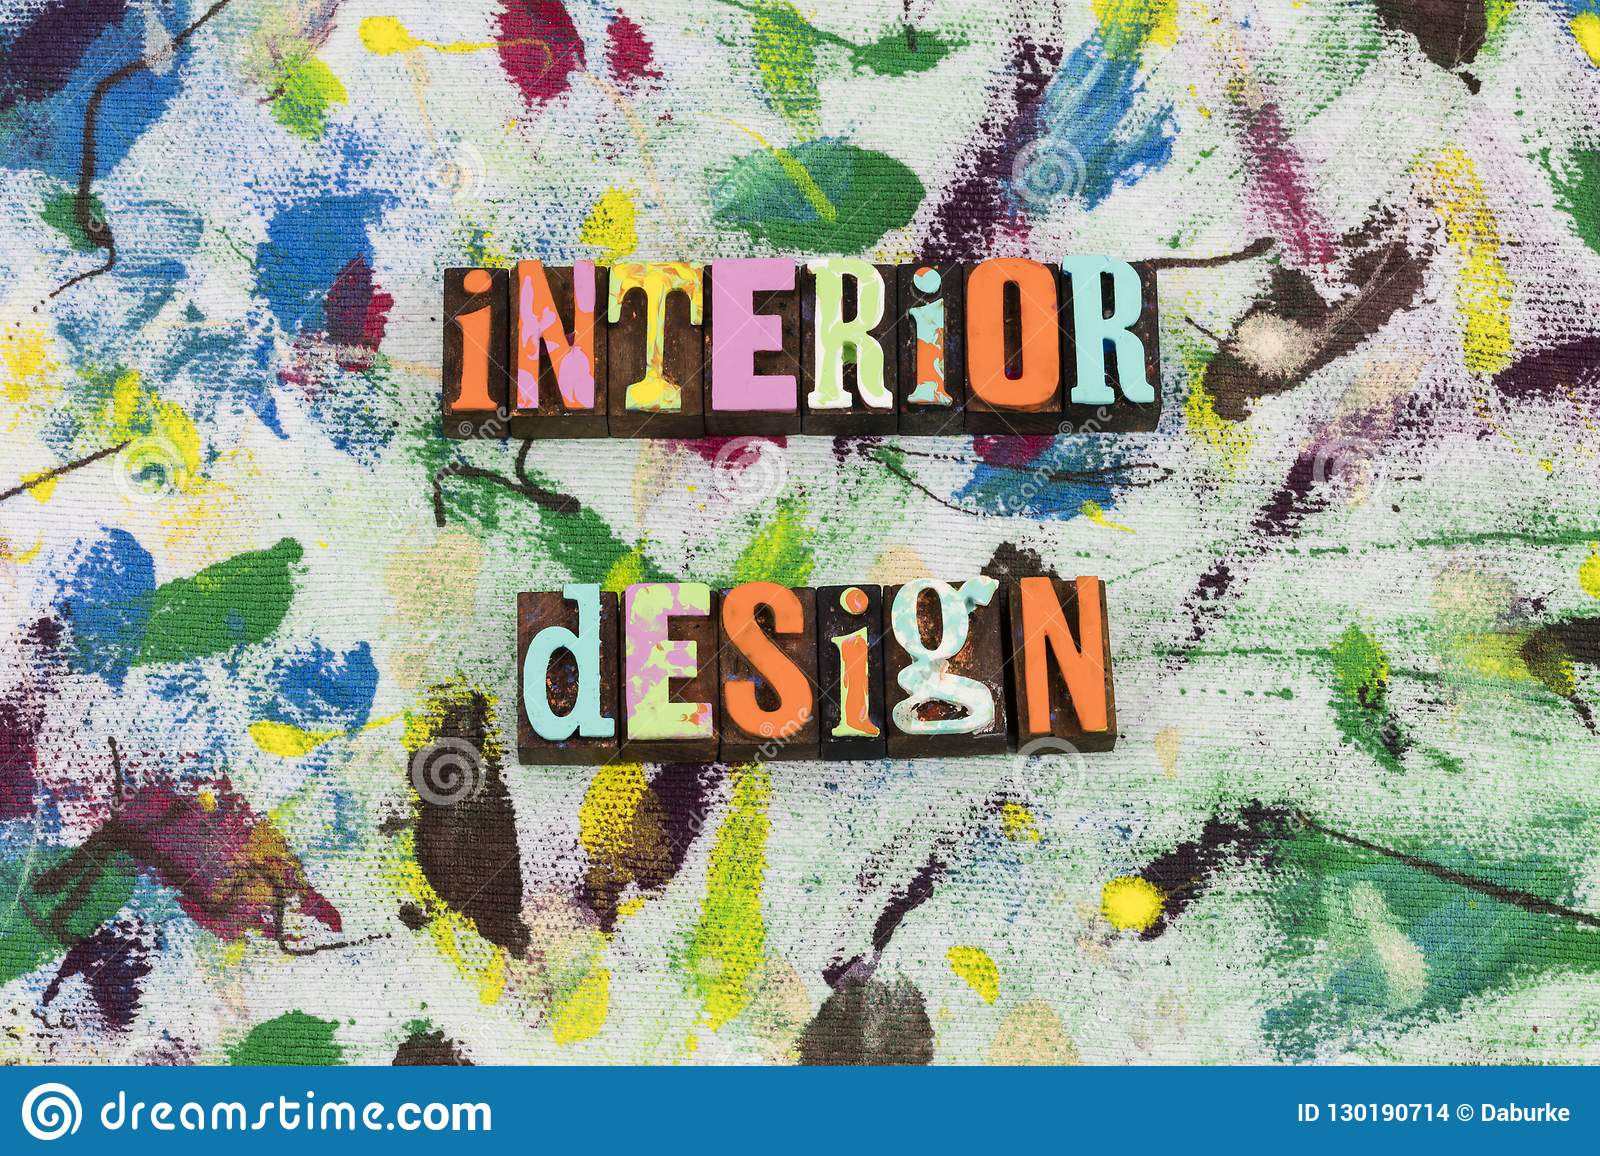 Small business interior exterior design plans graphic typography letterpress home marketing creativity decoration house project social media improvement